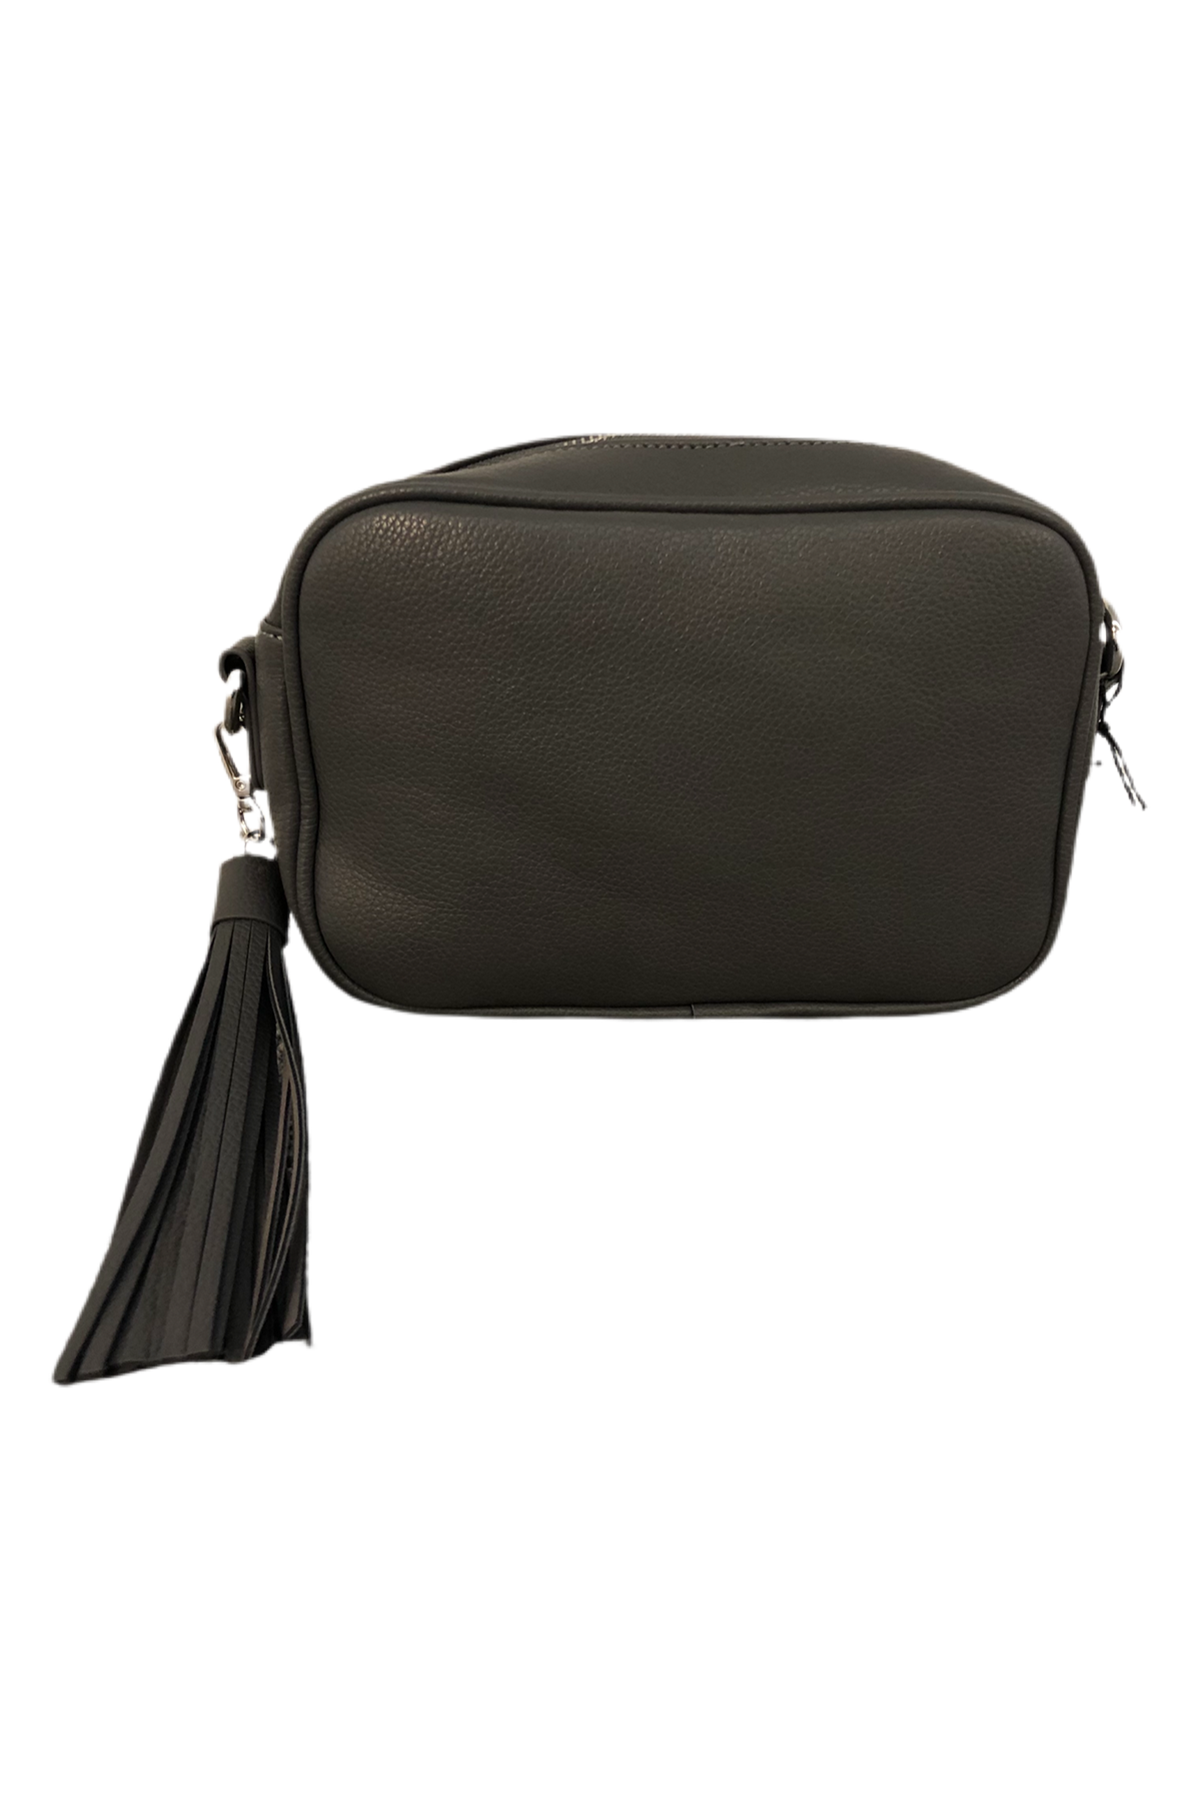 Tassel Bag (No Strap)